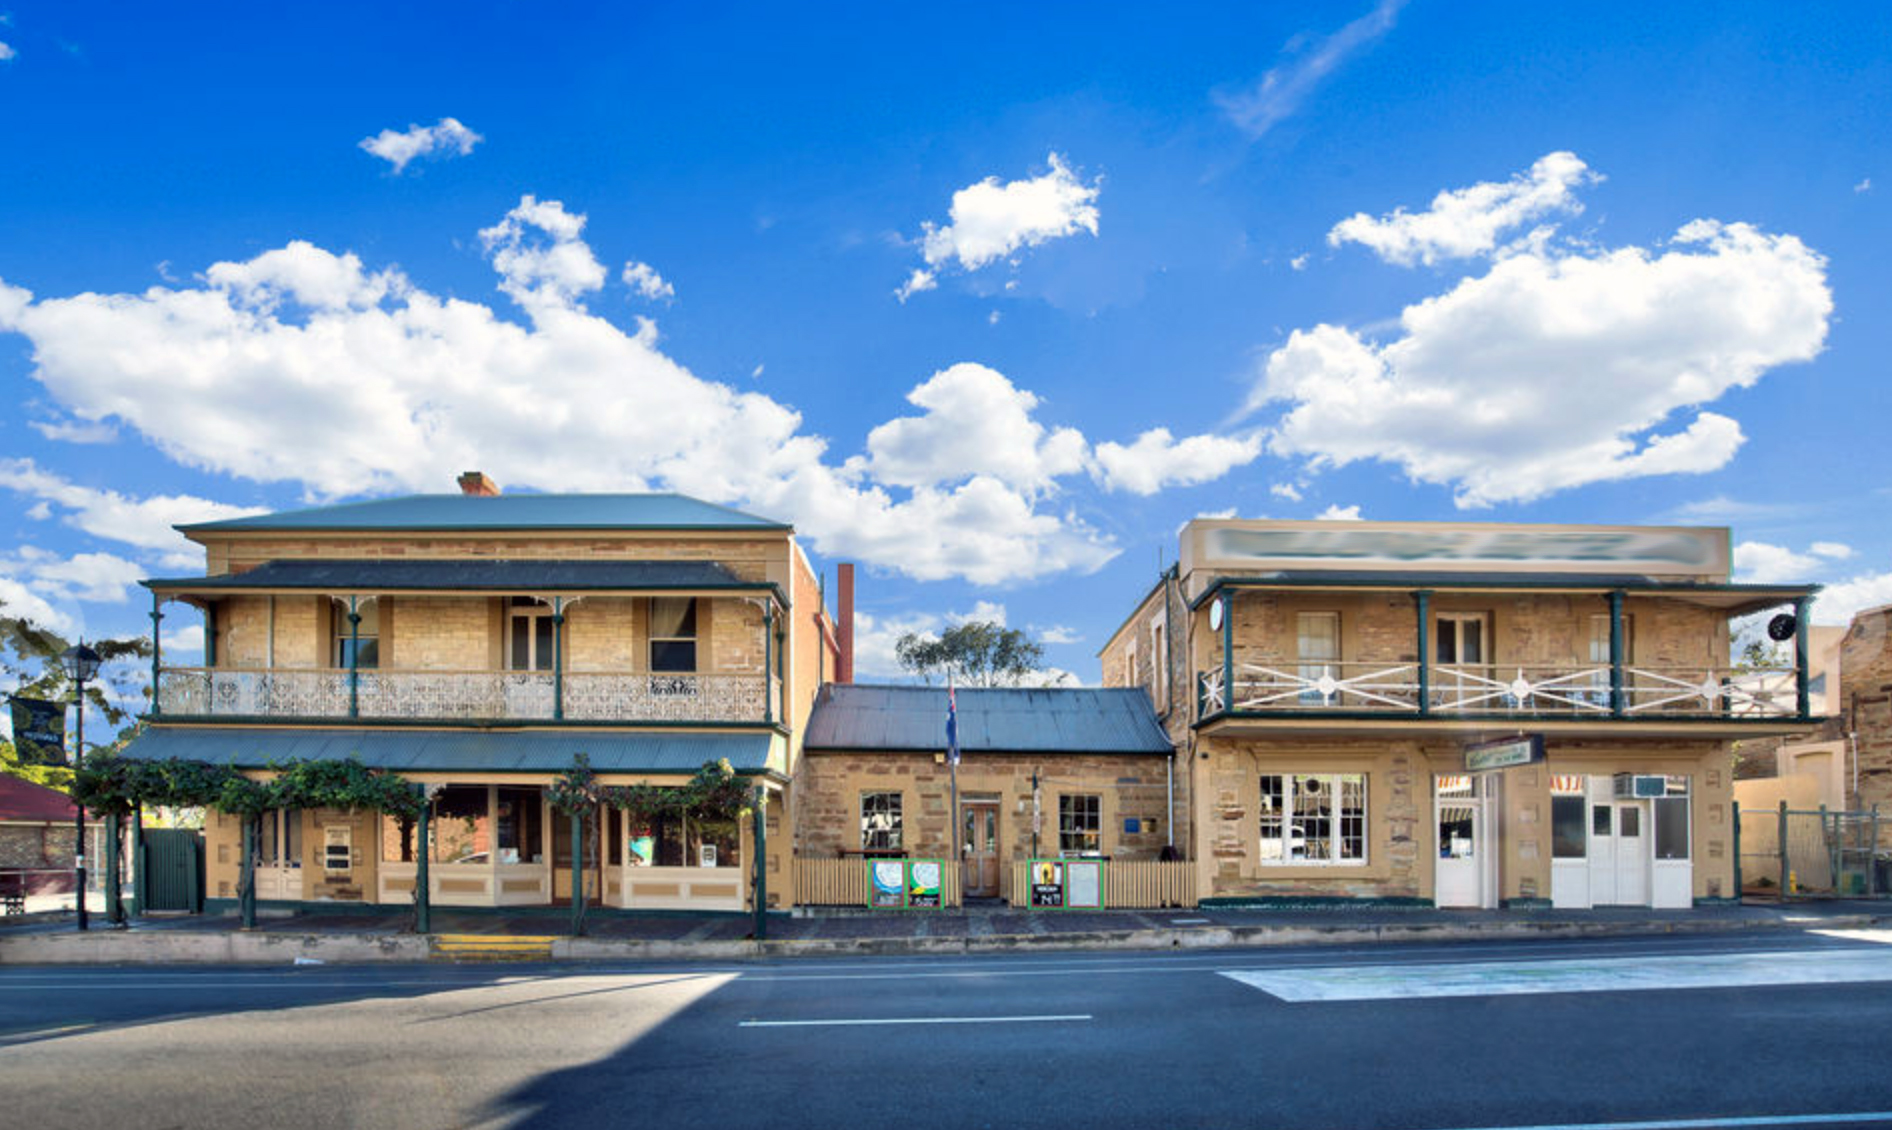 Country Hotel For Sale Famous McLaren Vale Wine Region in South Australia